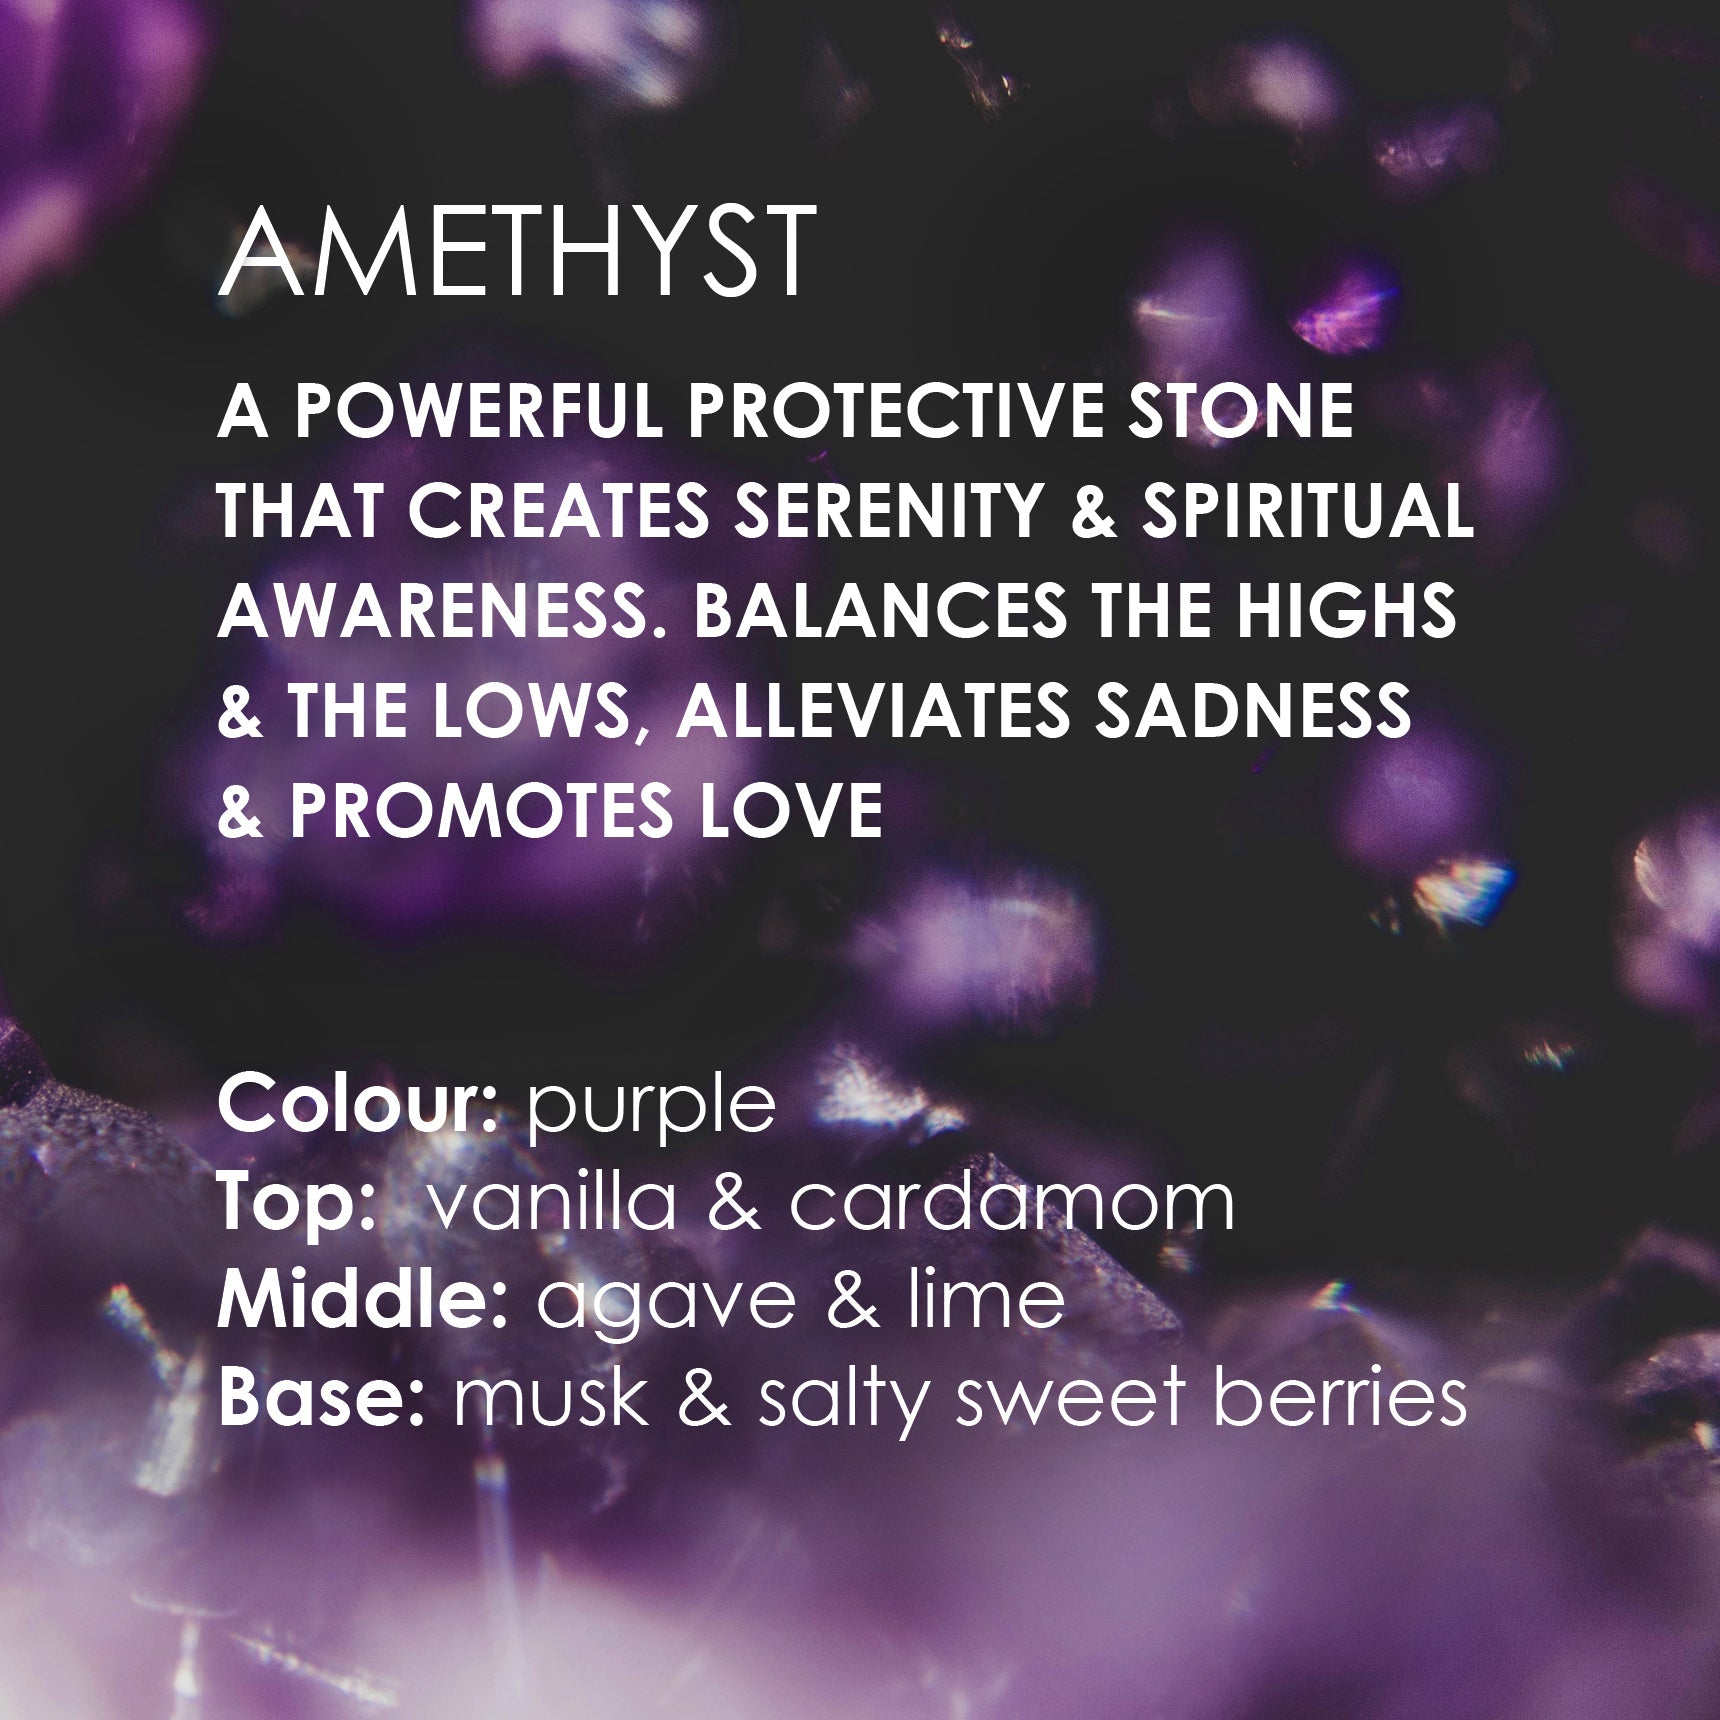 Image of Amethyst Candle card text with Amethyst stone background